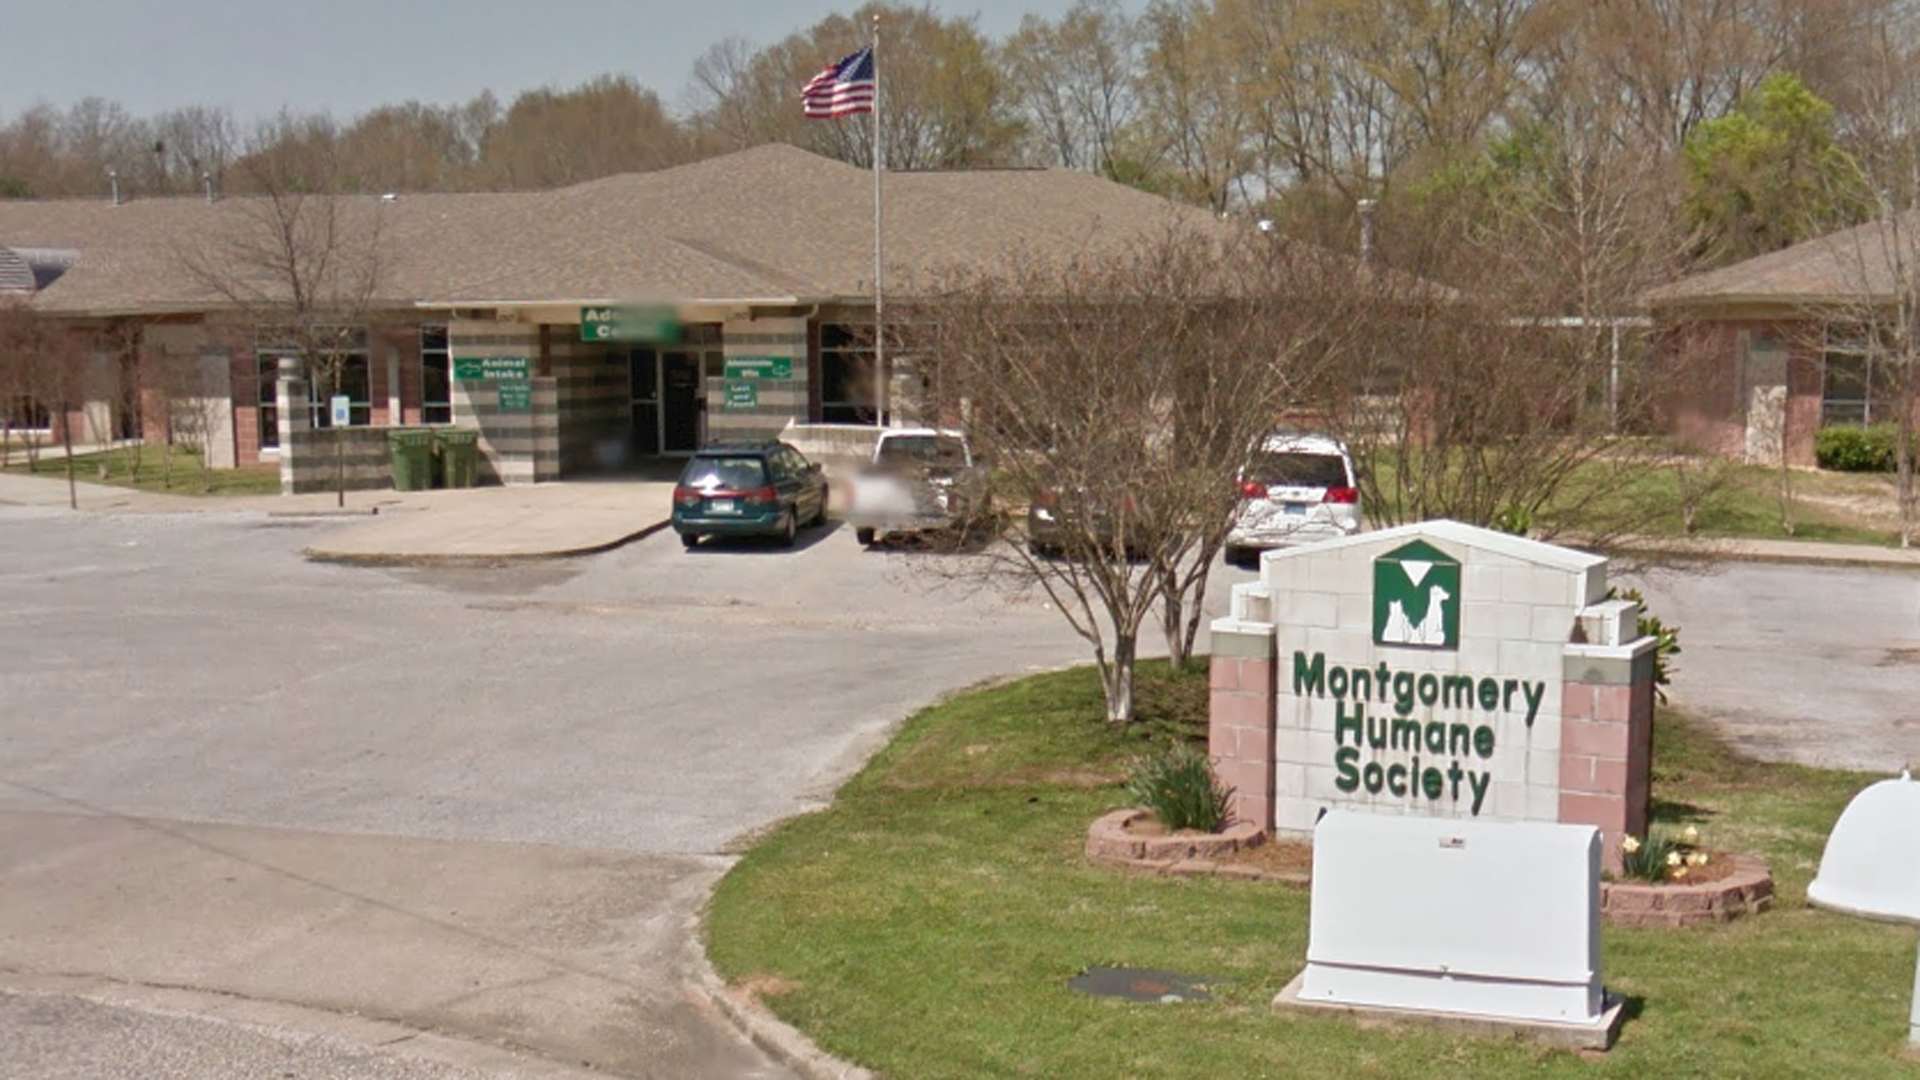 The Montgomery Humane Society is seen in a Google Maps image.